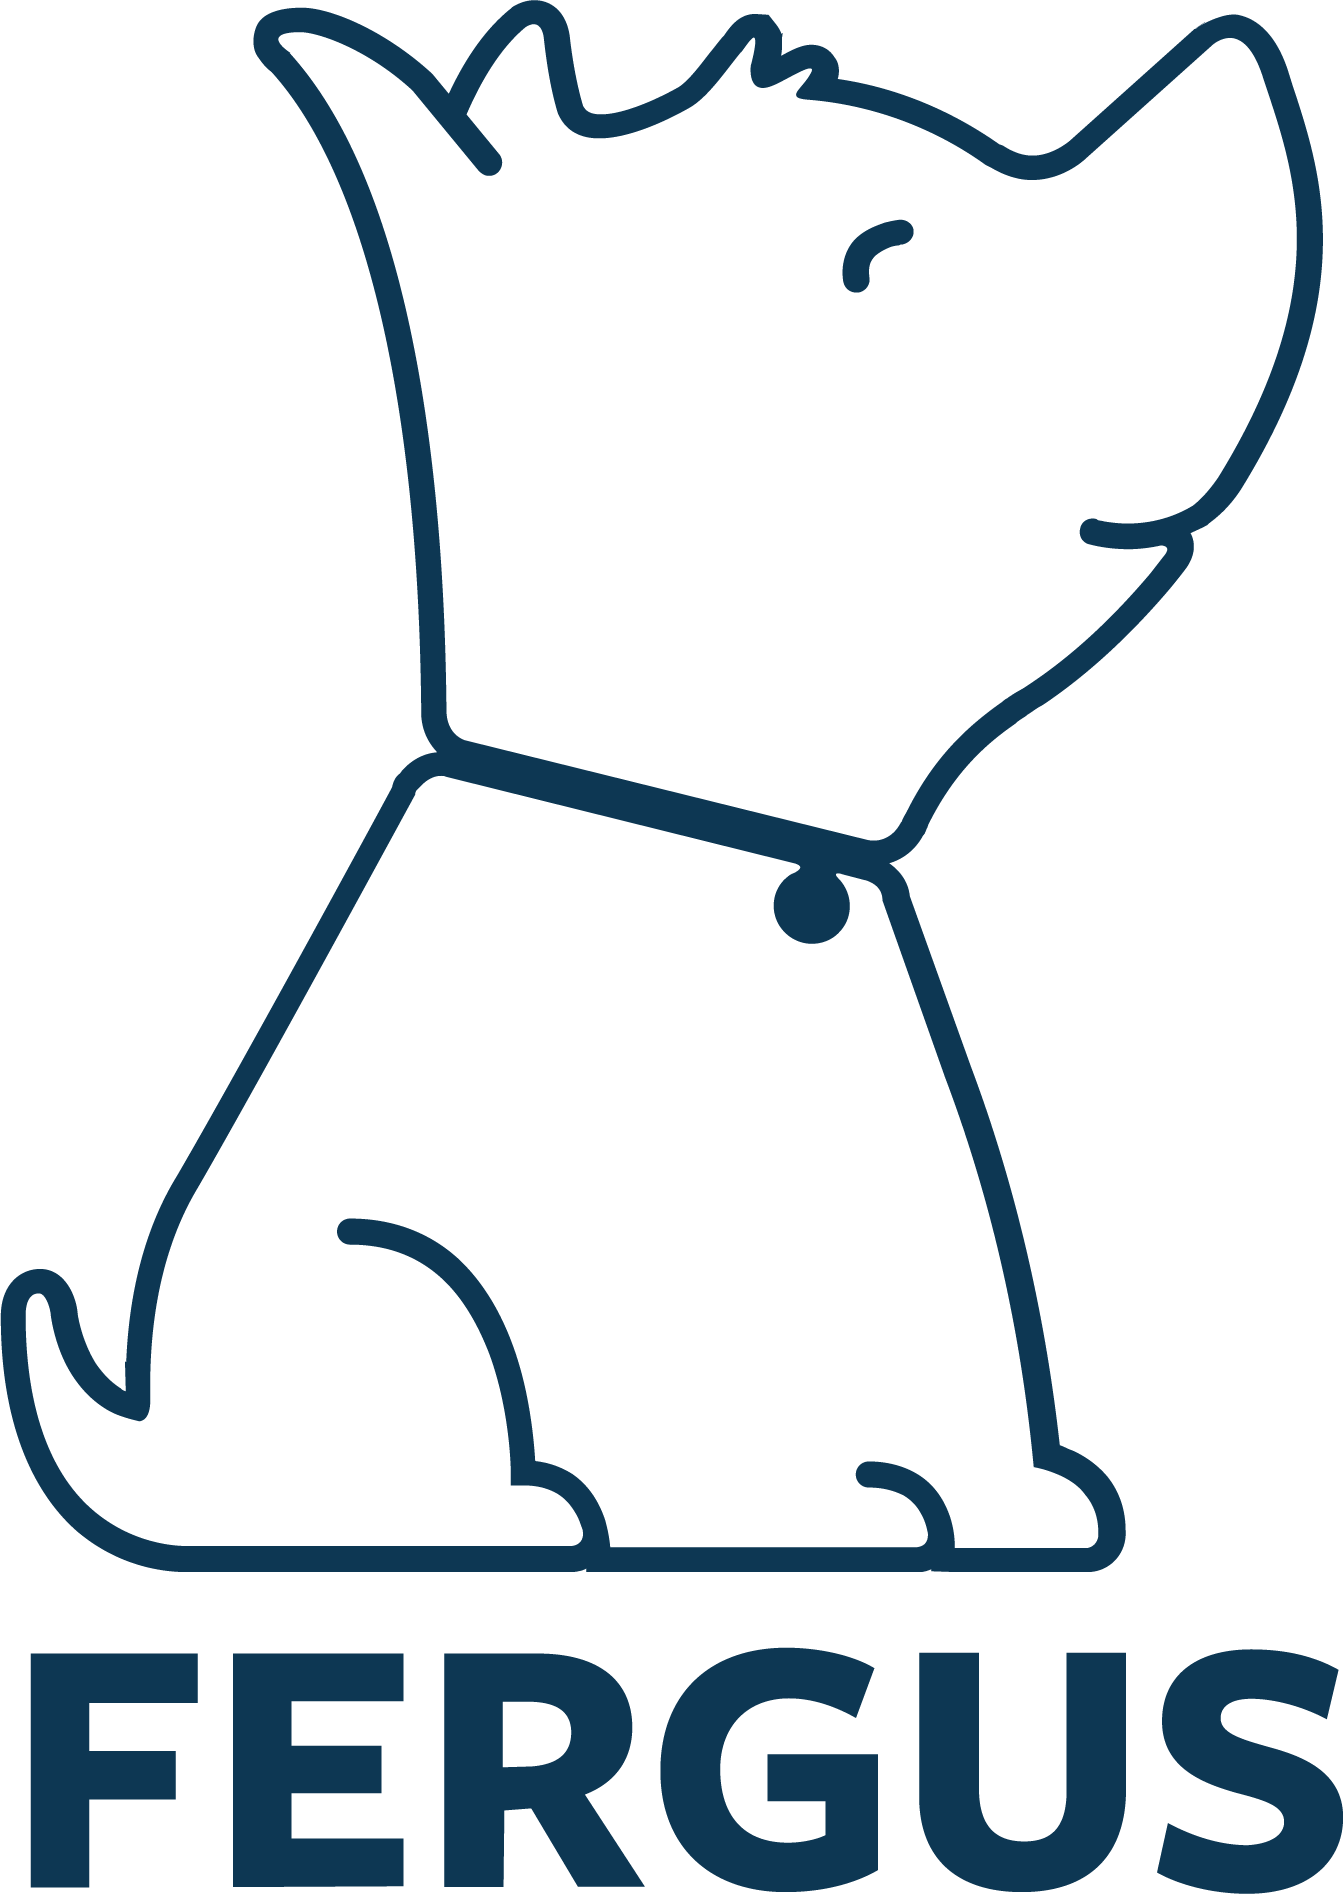 fergus_outline_vertical_text.png